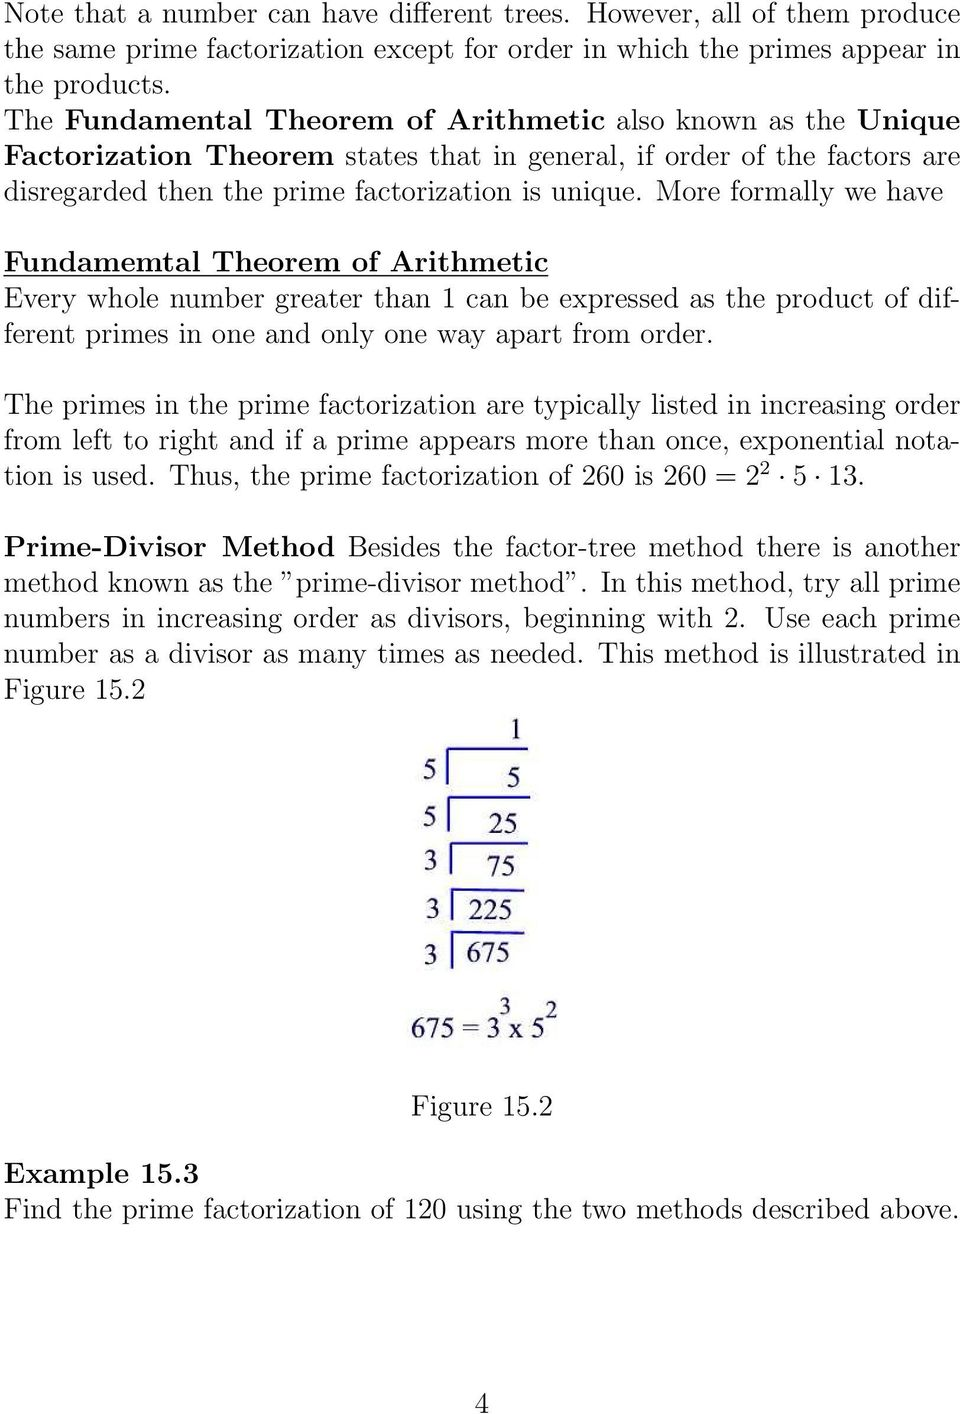 More formally we have Fundamemtal Theorem of Arithmetic Every whole number greater than 1 can be expressed as the product of different primes in one and only one way apart from order.